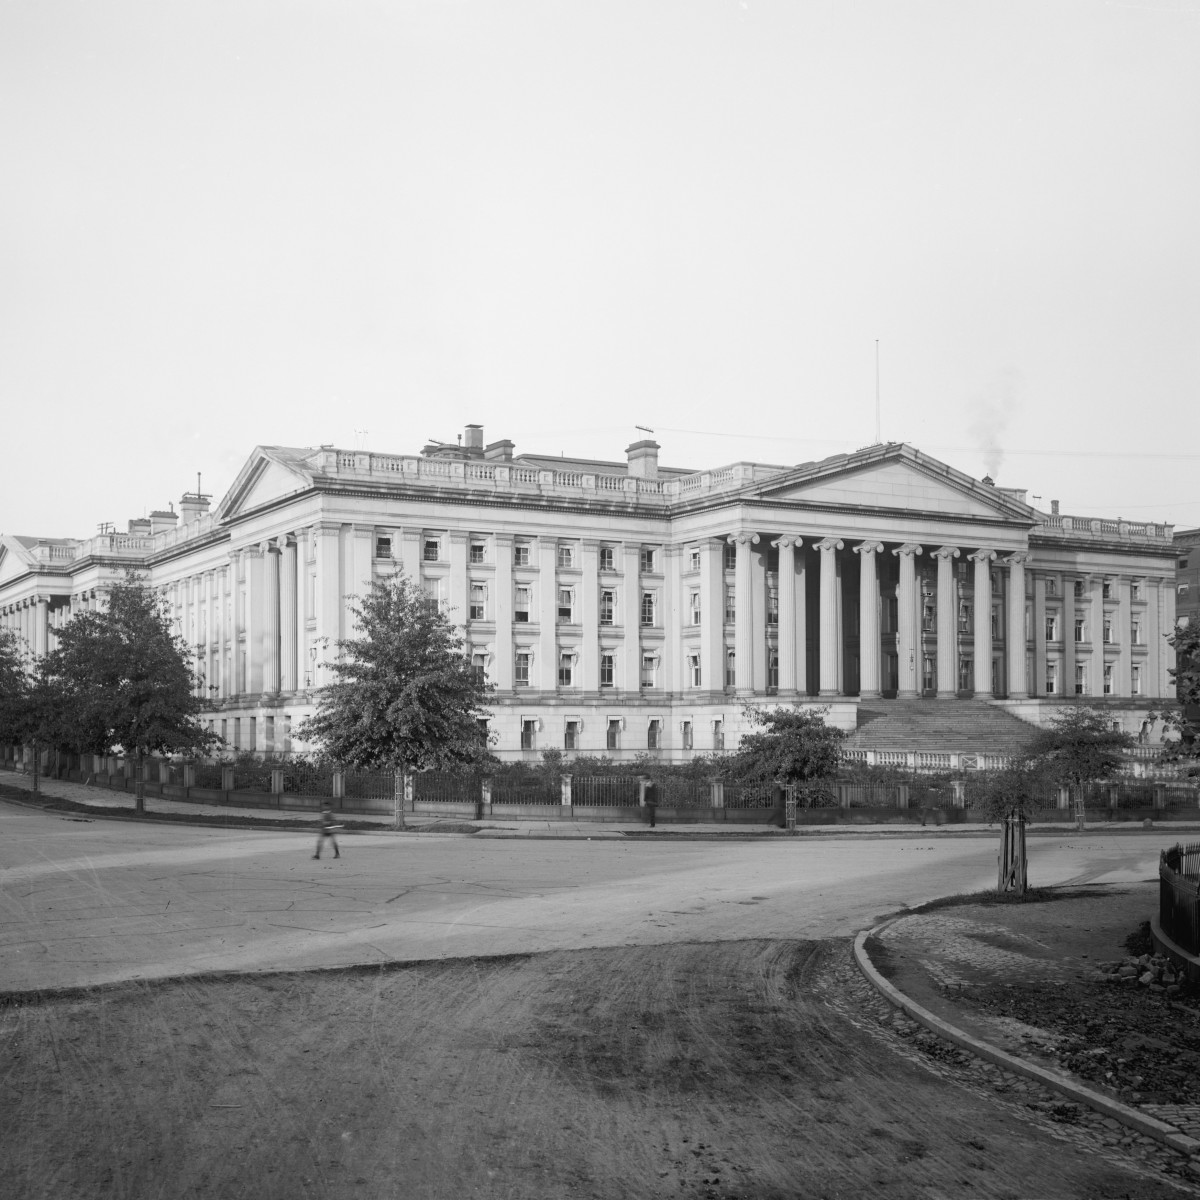 U.S. Treasury Building in Washington, D.C., circa 1900.